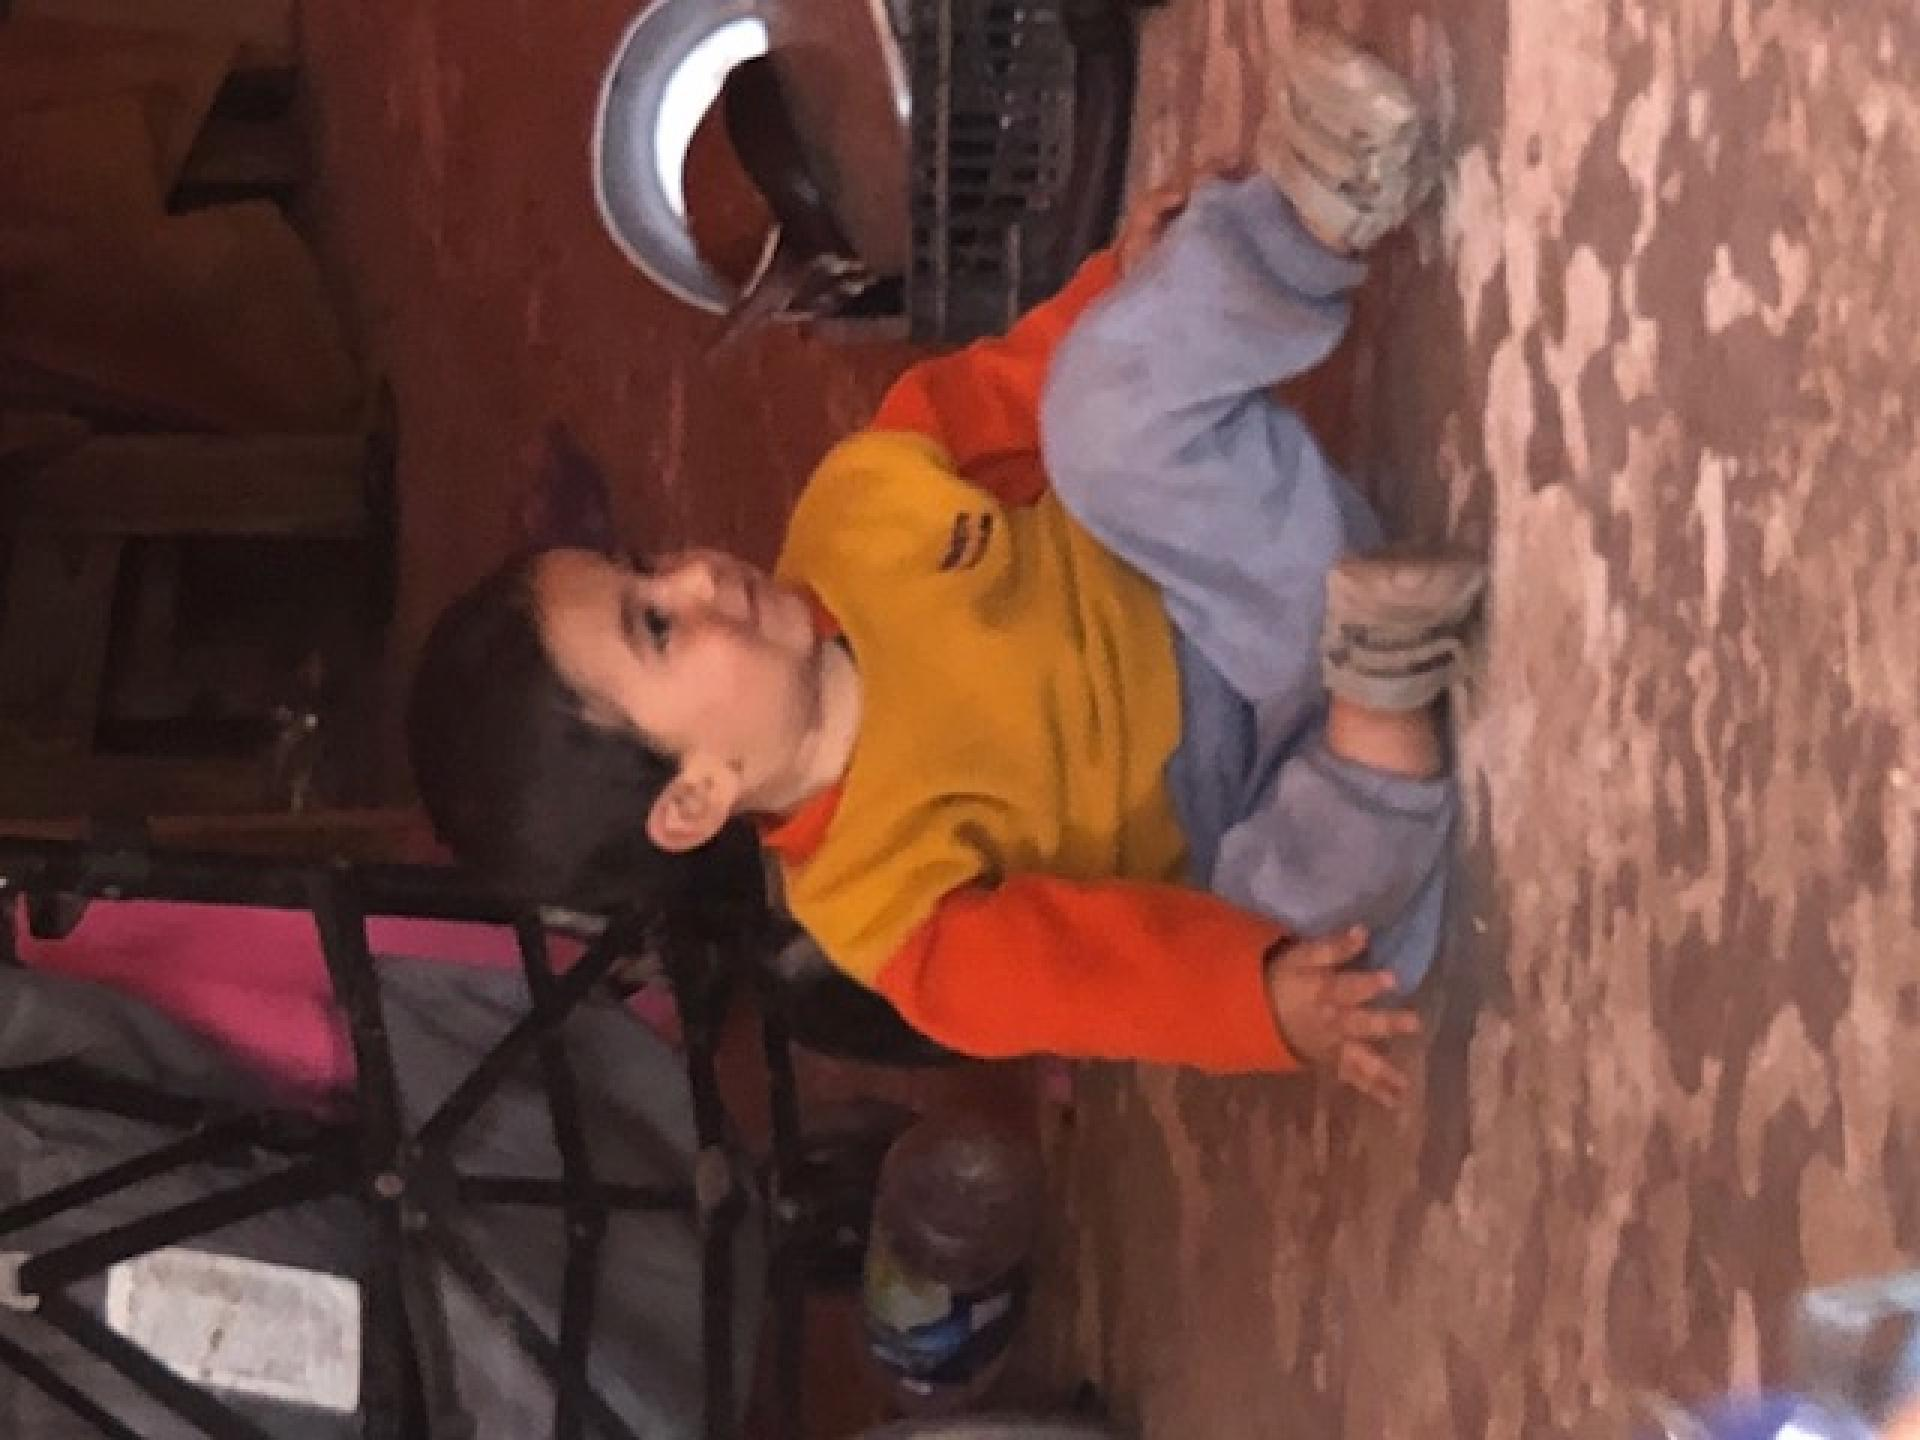 Rami from Makhoul in the Palestinian Jordan Valley – born with heart and lung defects